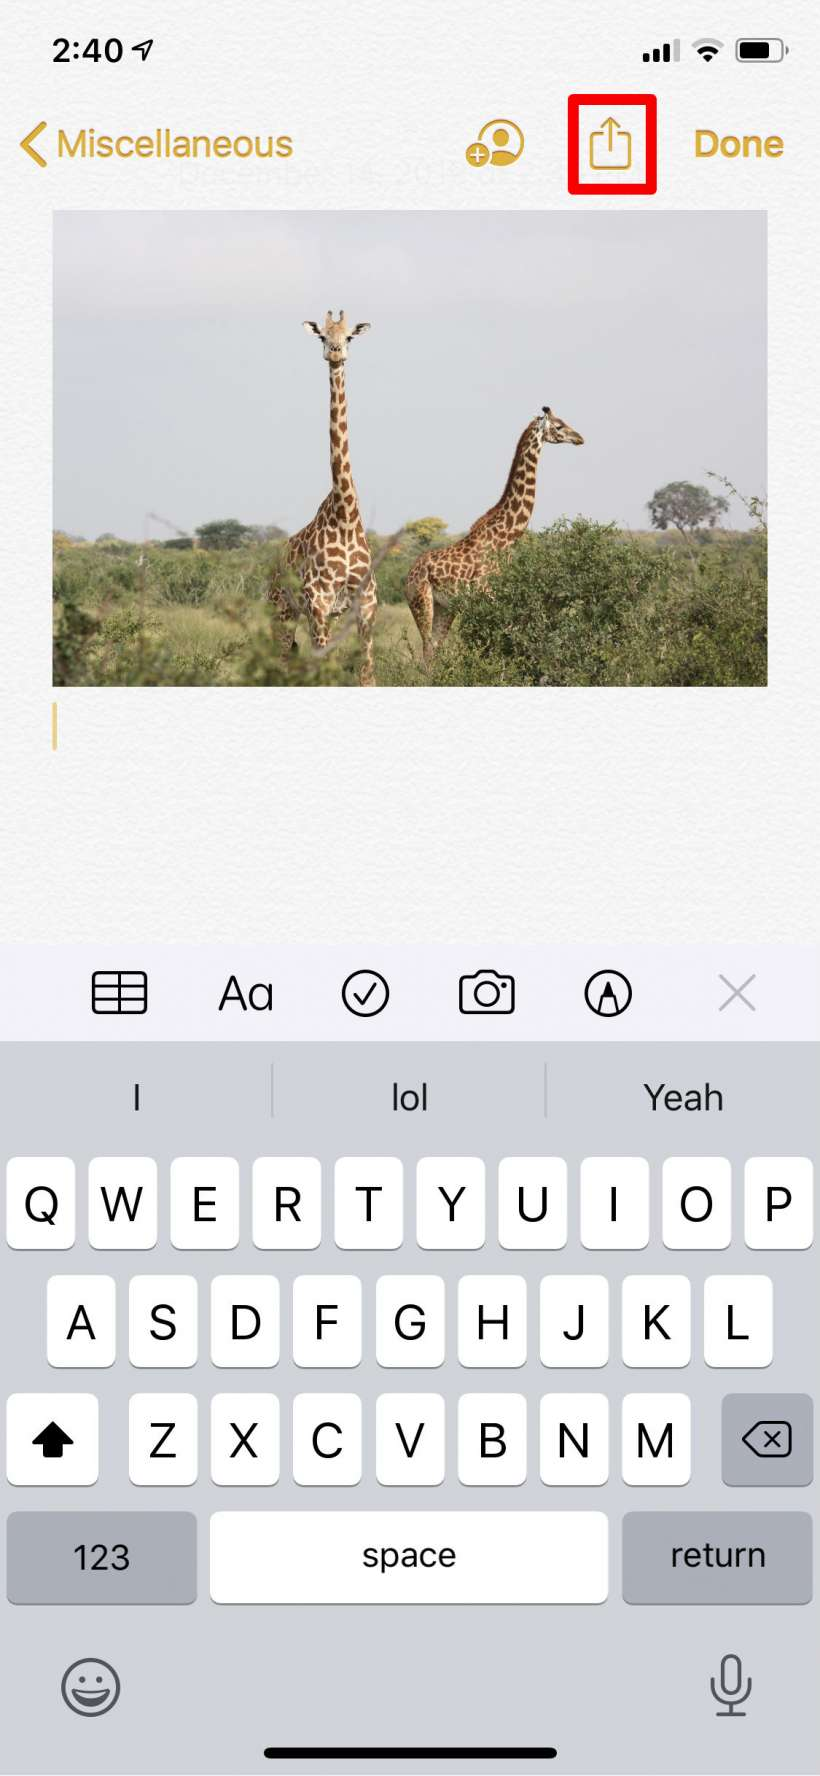 How to password protect a photo album on iPhone and iPad.